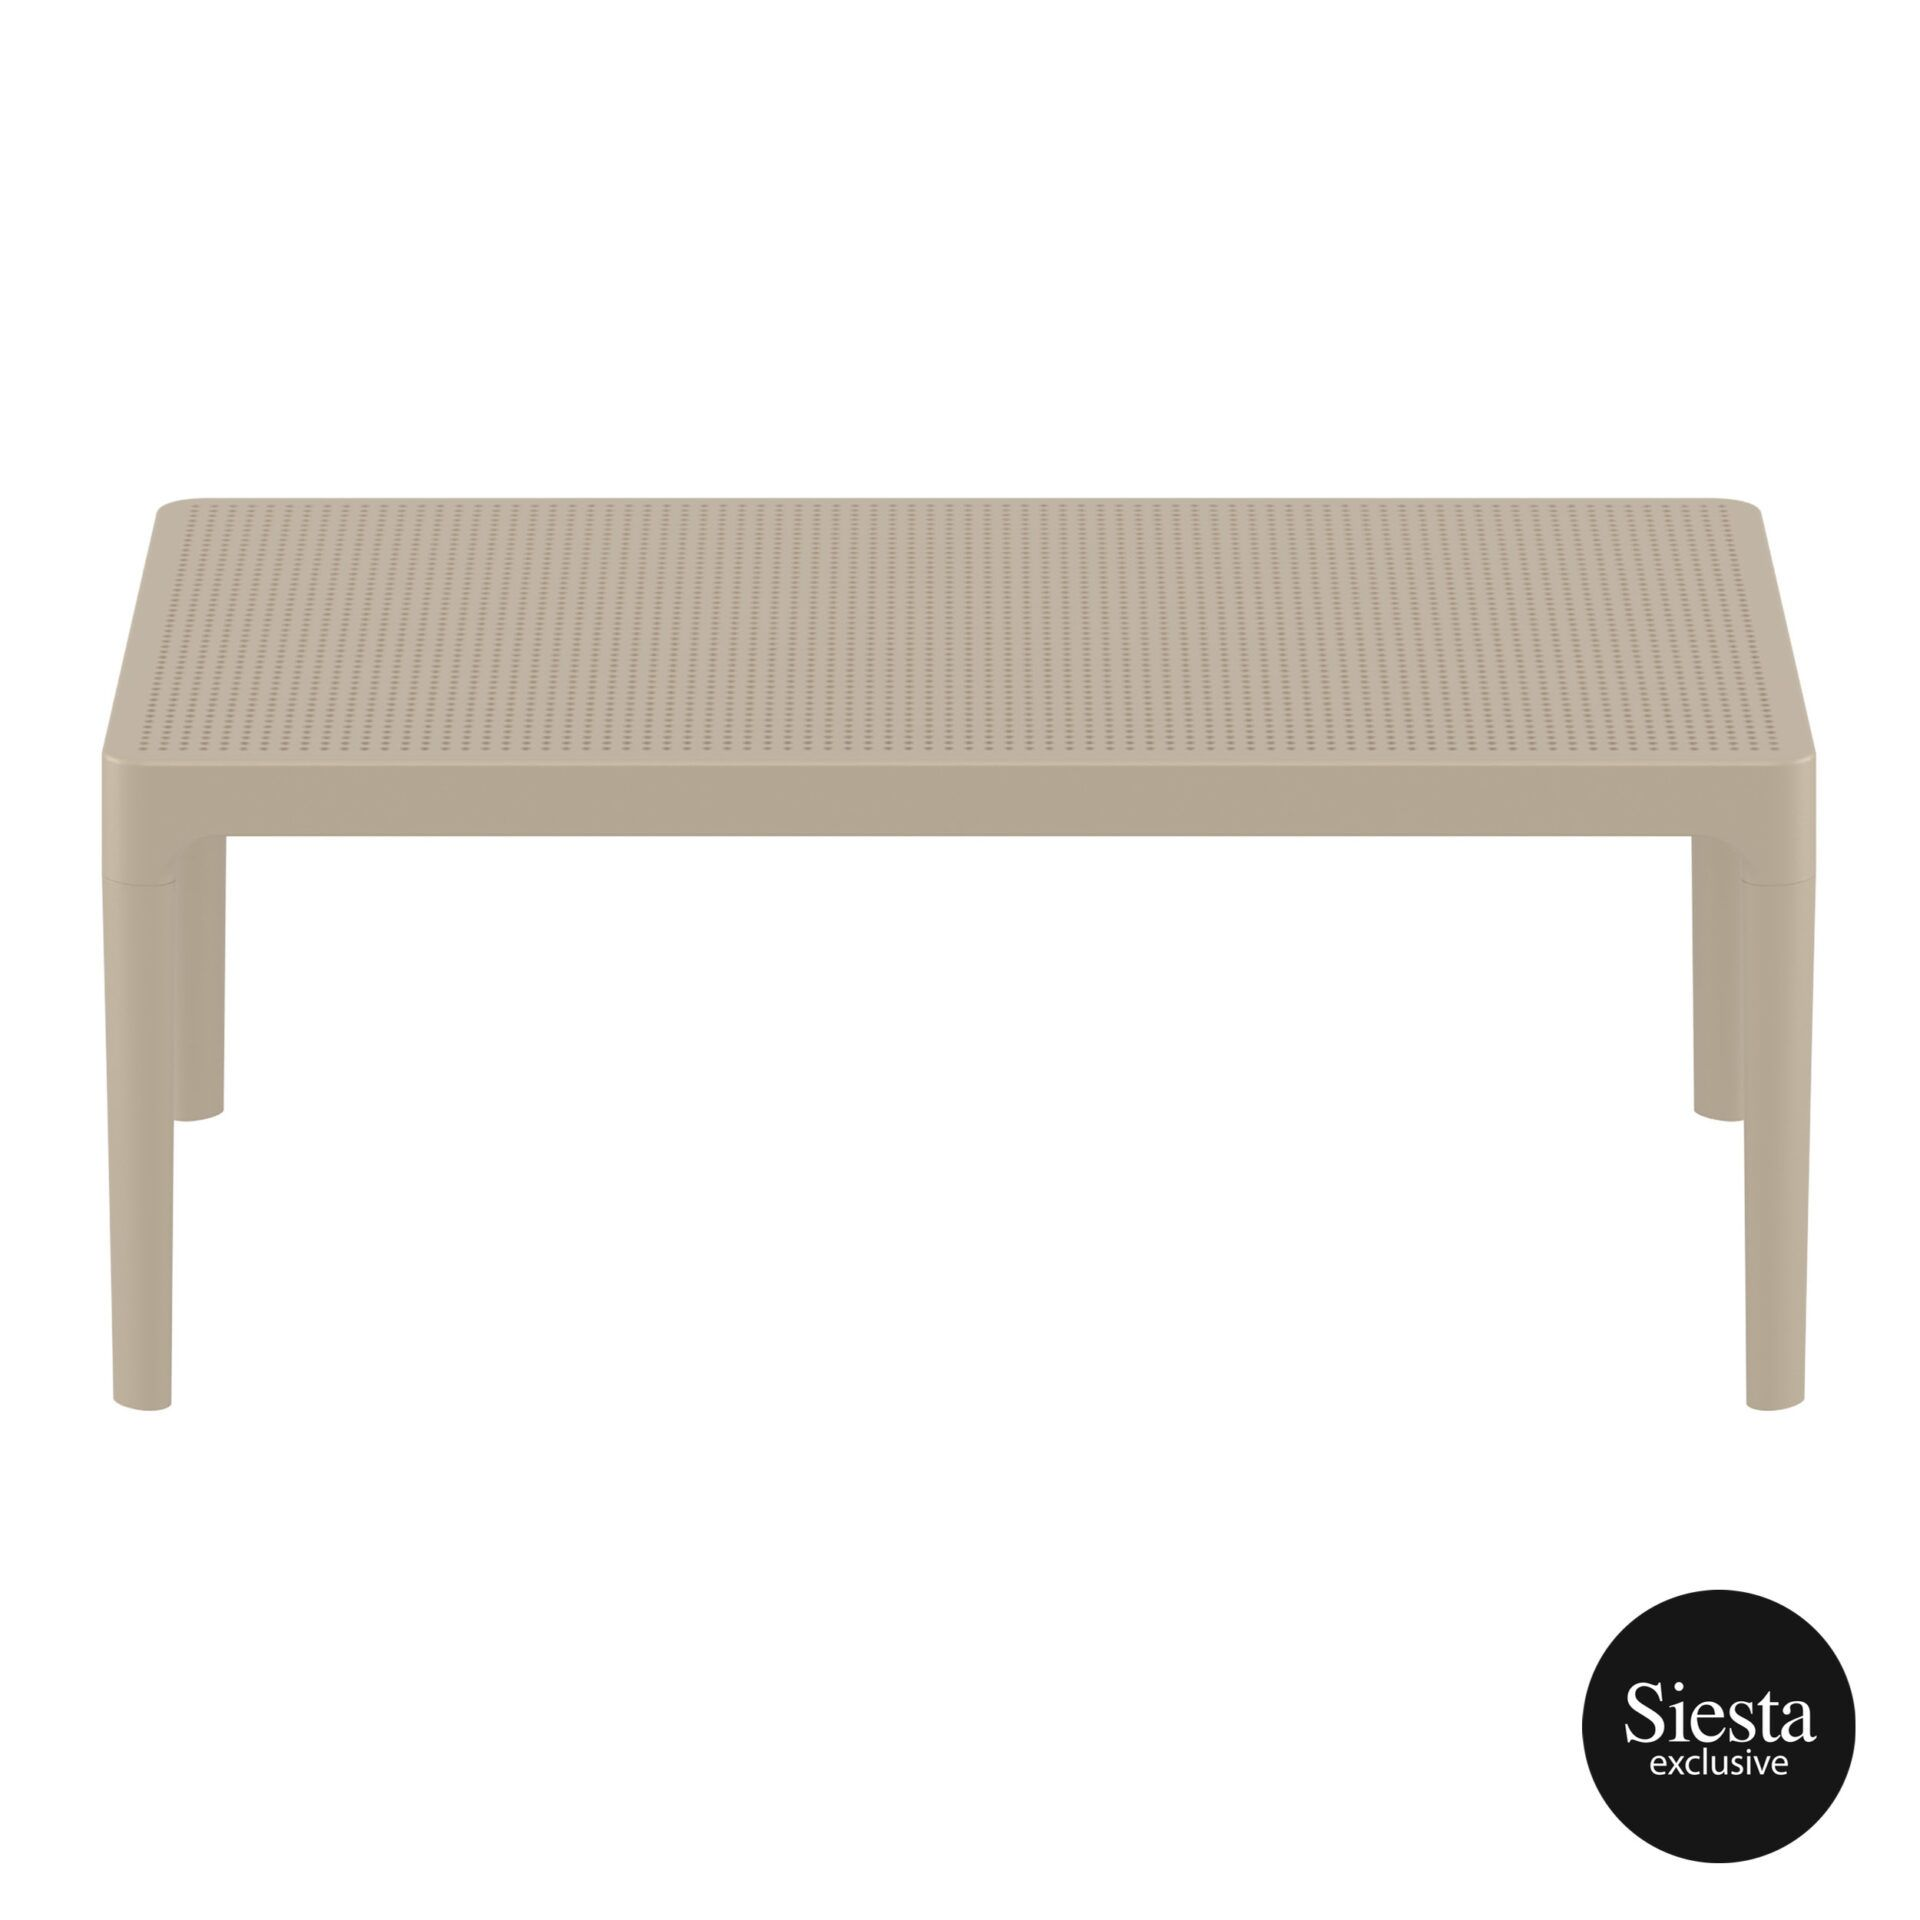 polypropylene outdoor sky lounge coffee table taupe long edge 1